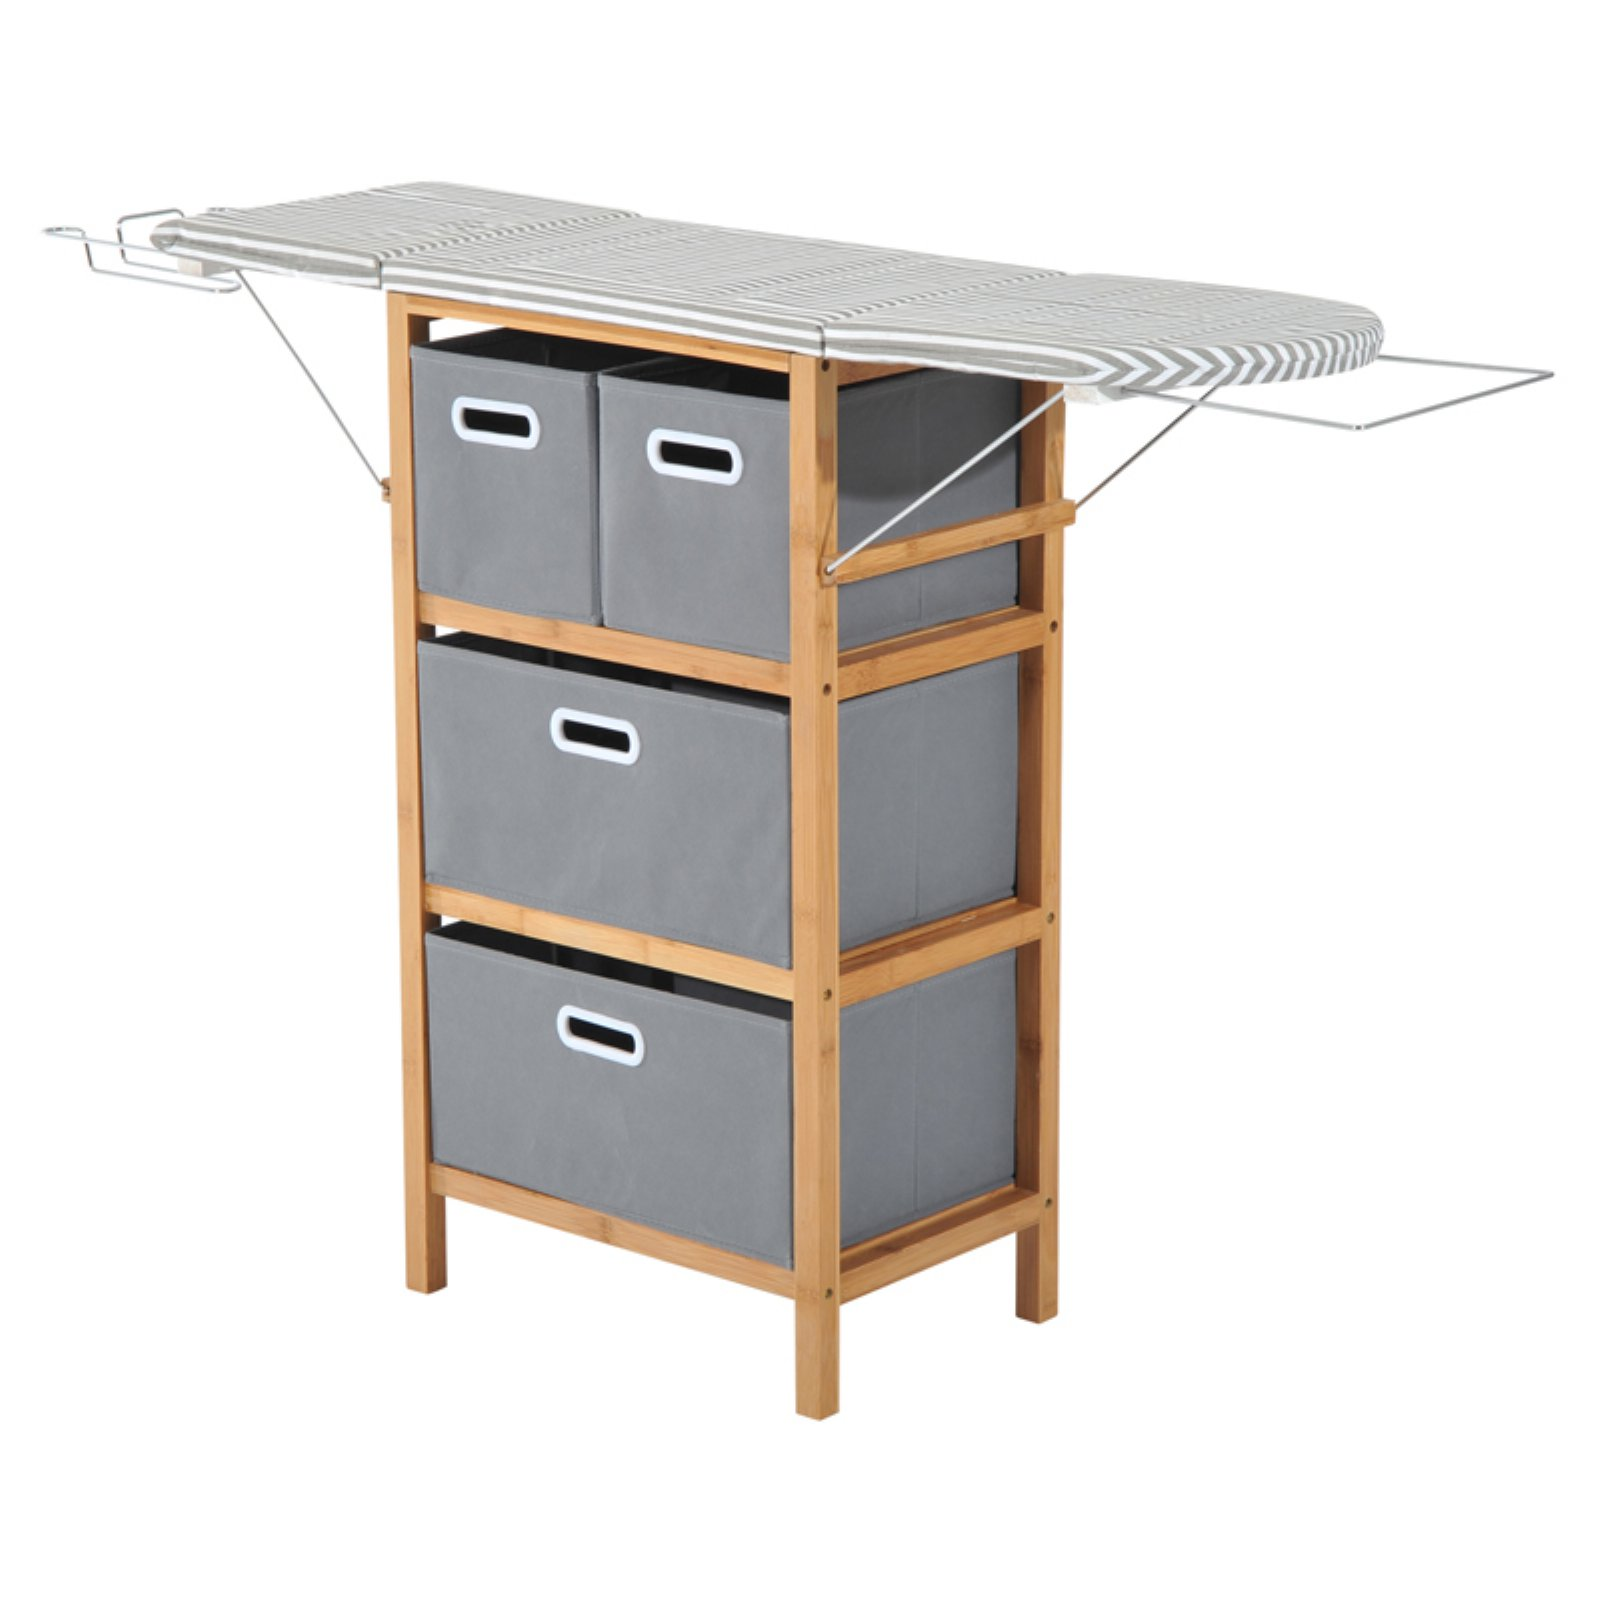 HomCom Collapsible Ironing Board Shelving Unit with Storage Boxes